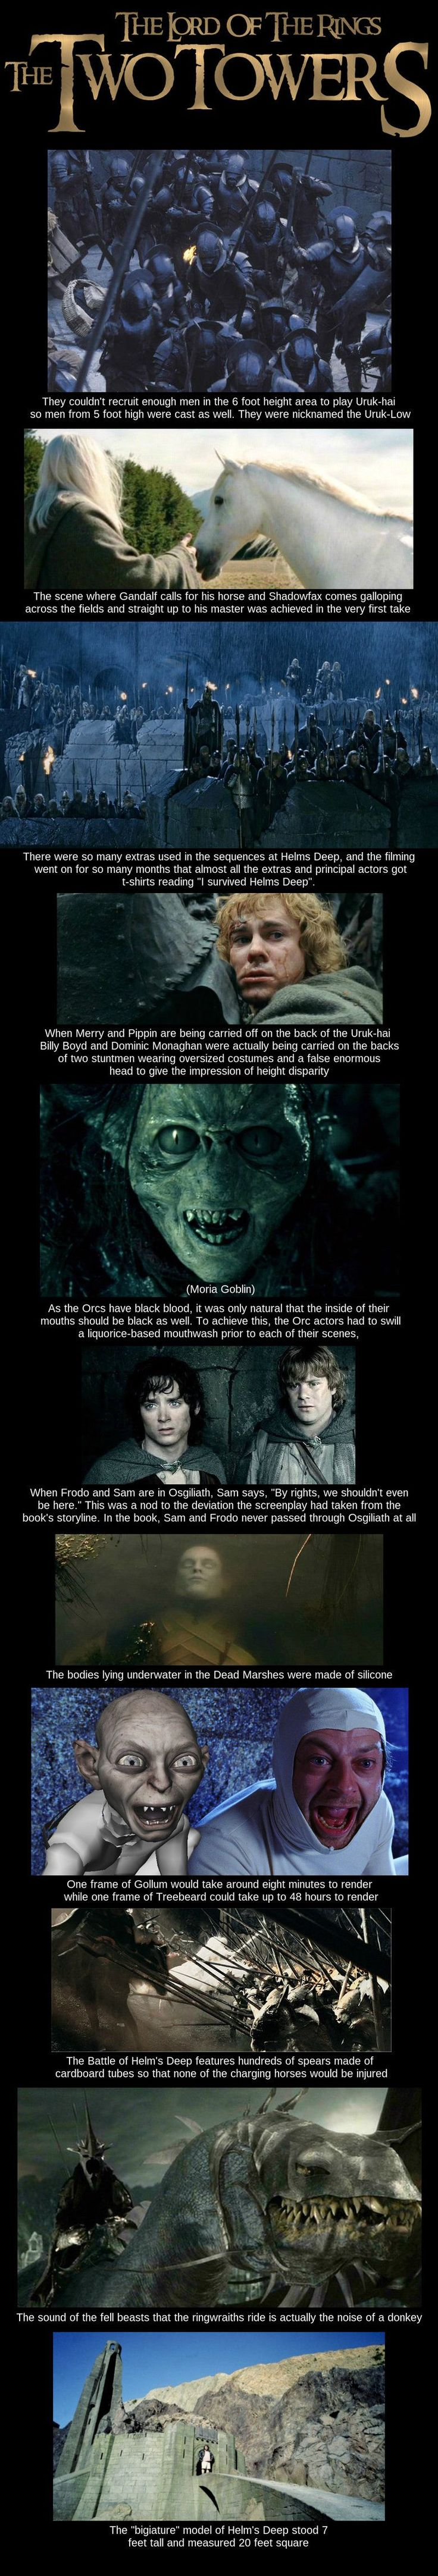 Facts about LOTR, The Two Towers this is awesome